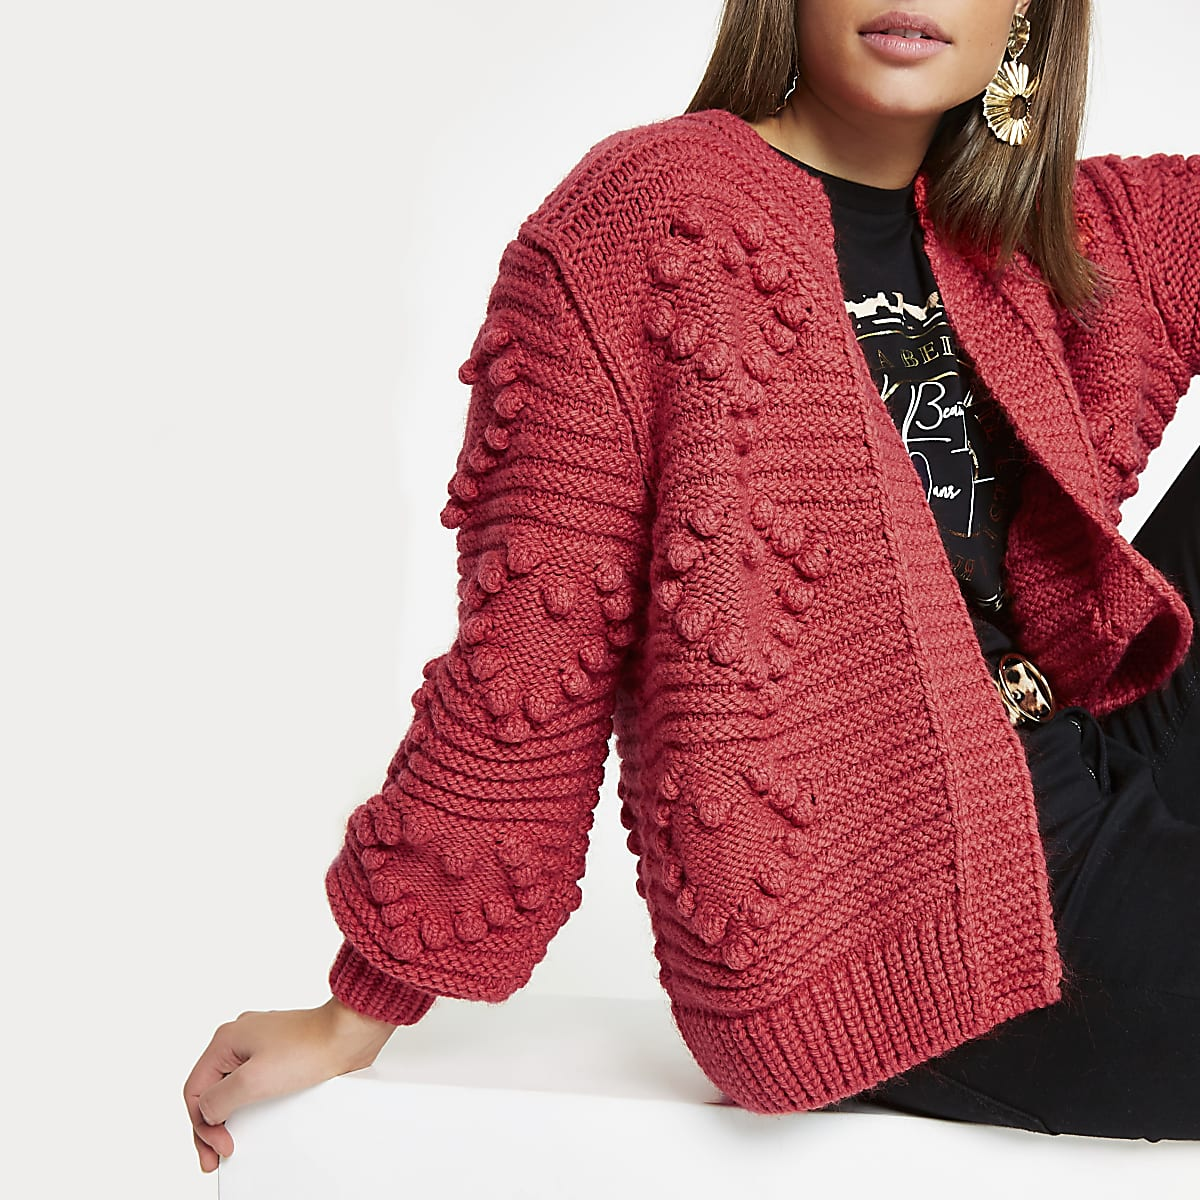 Red heart bobble chunky knit cardigan